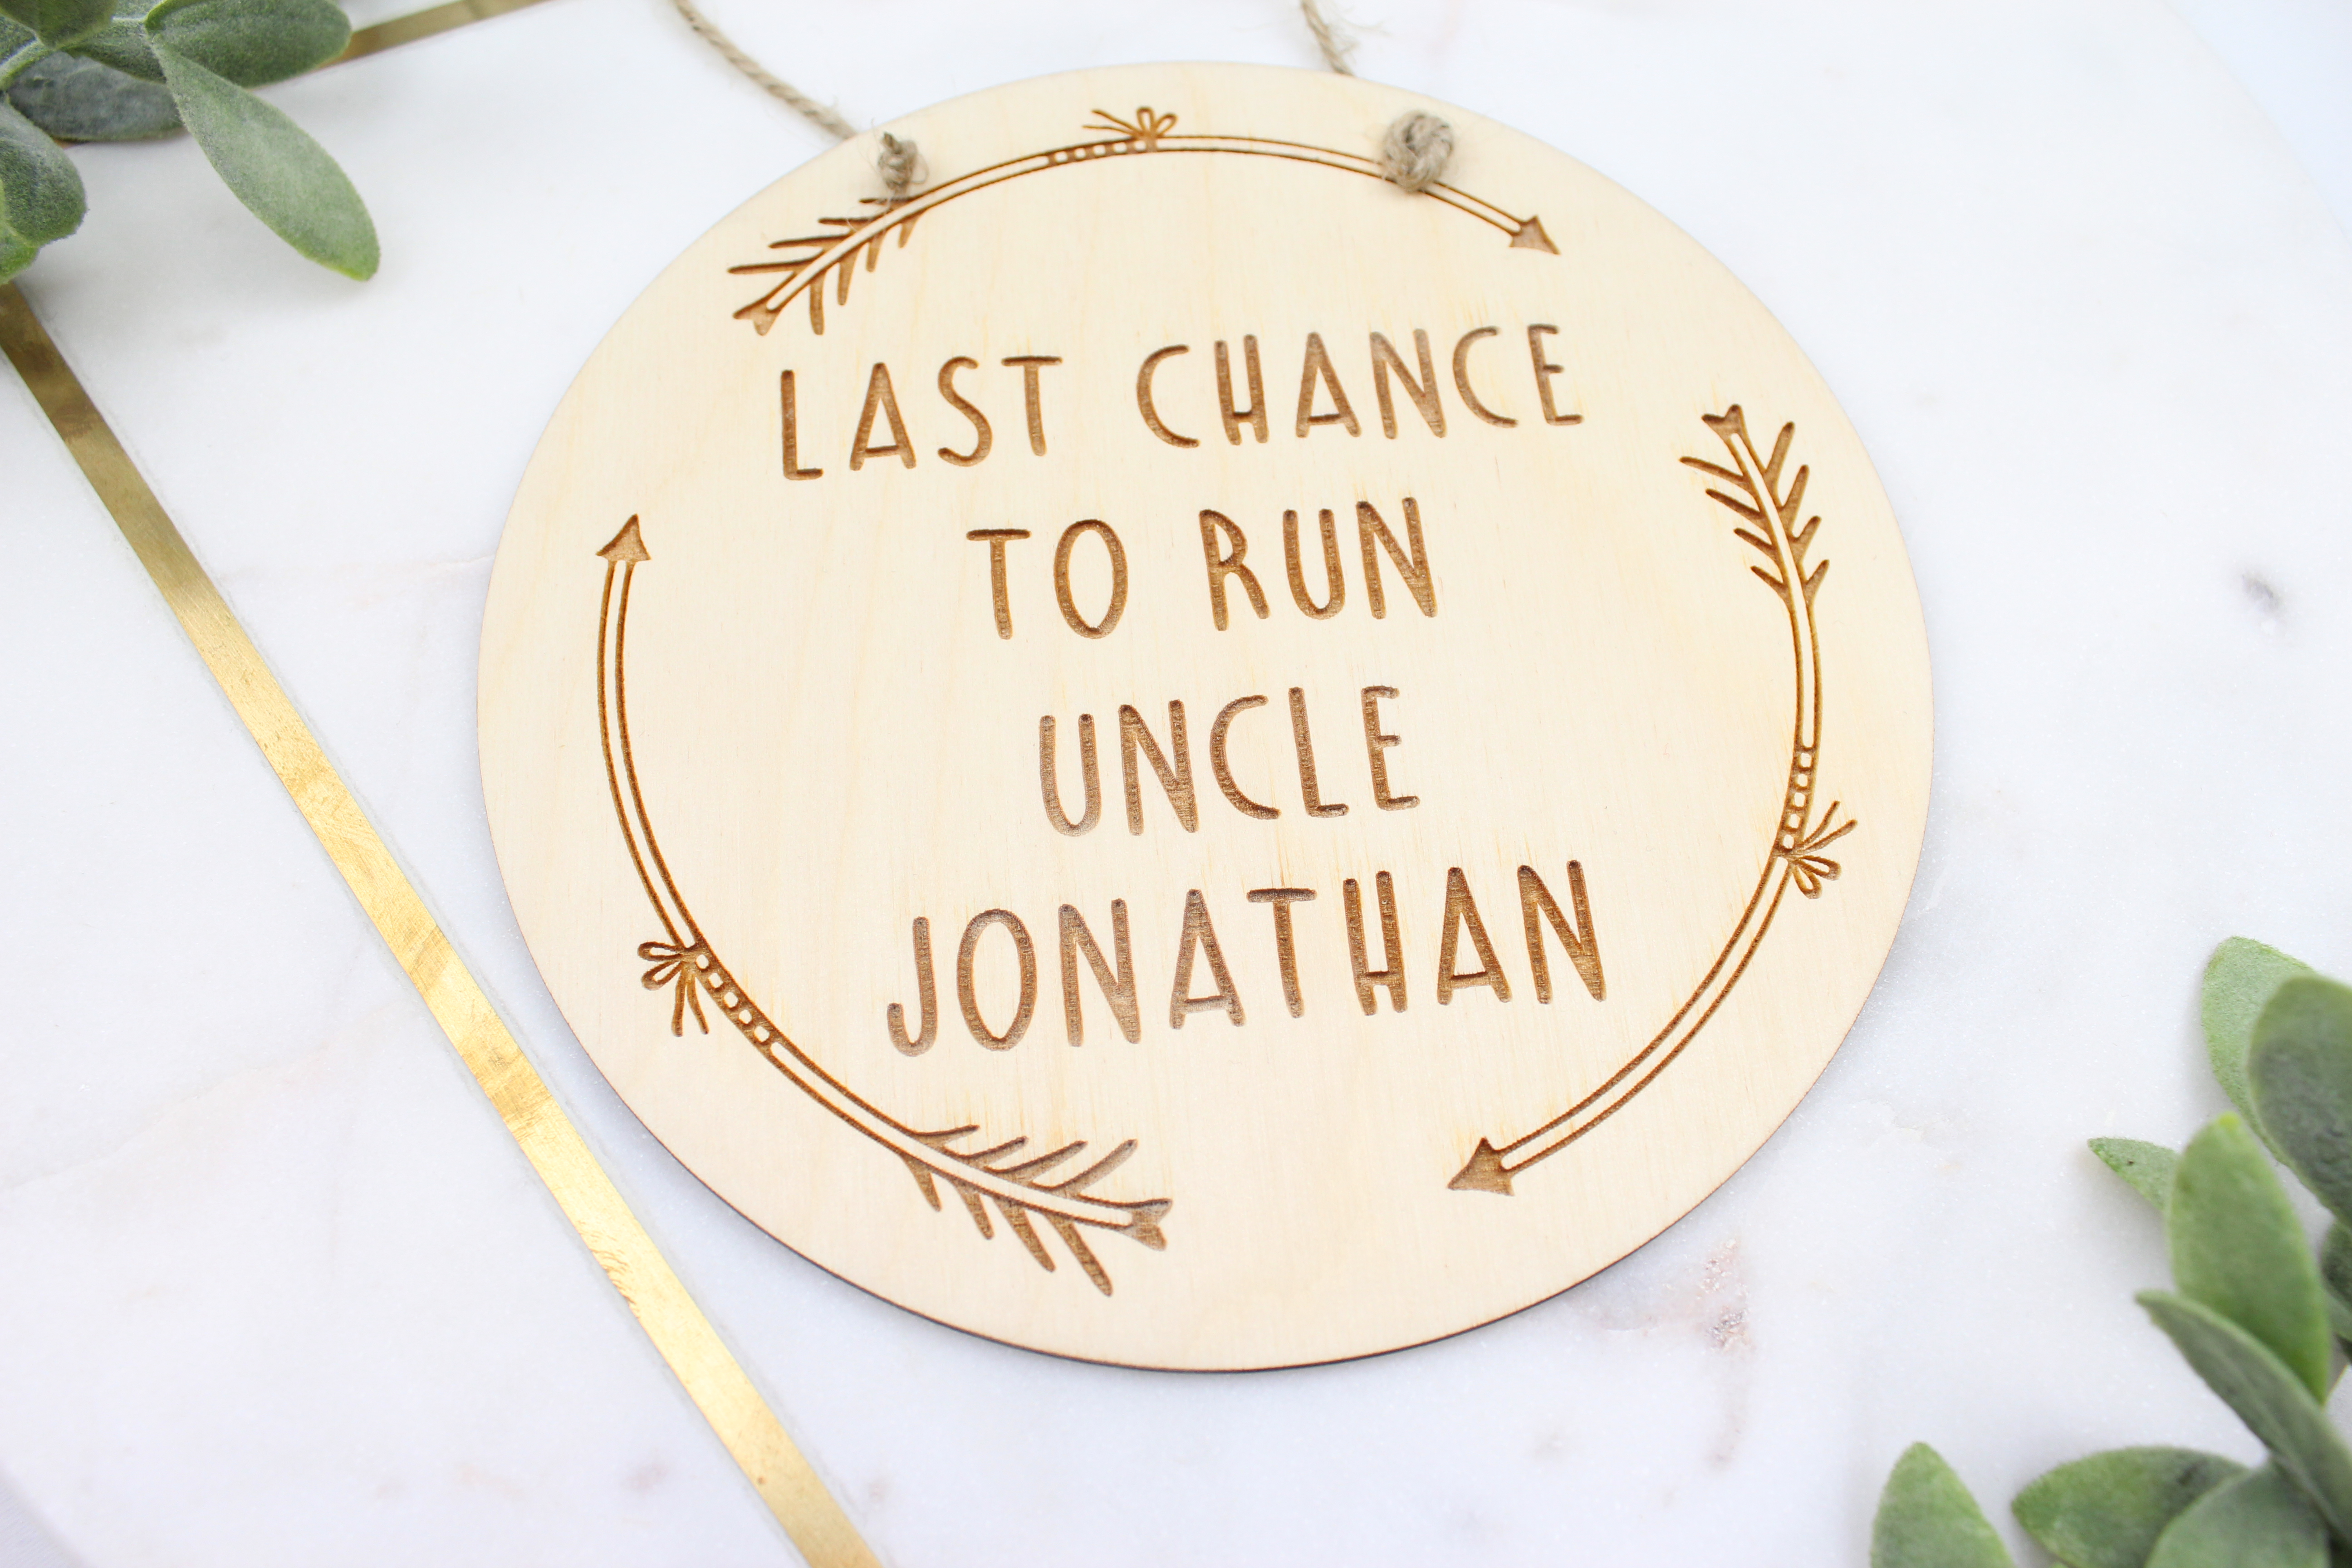 Last chance to run wooden plaque sign